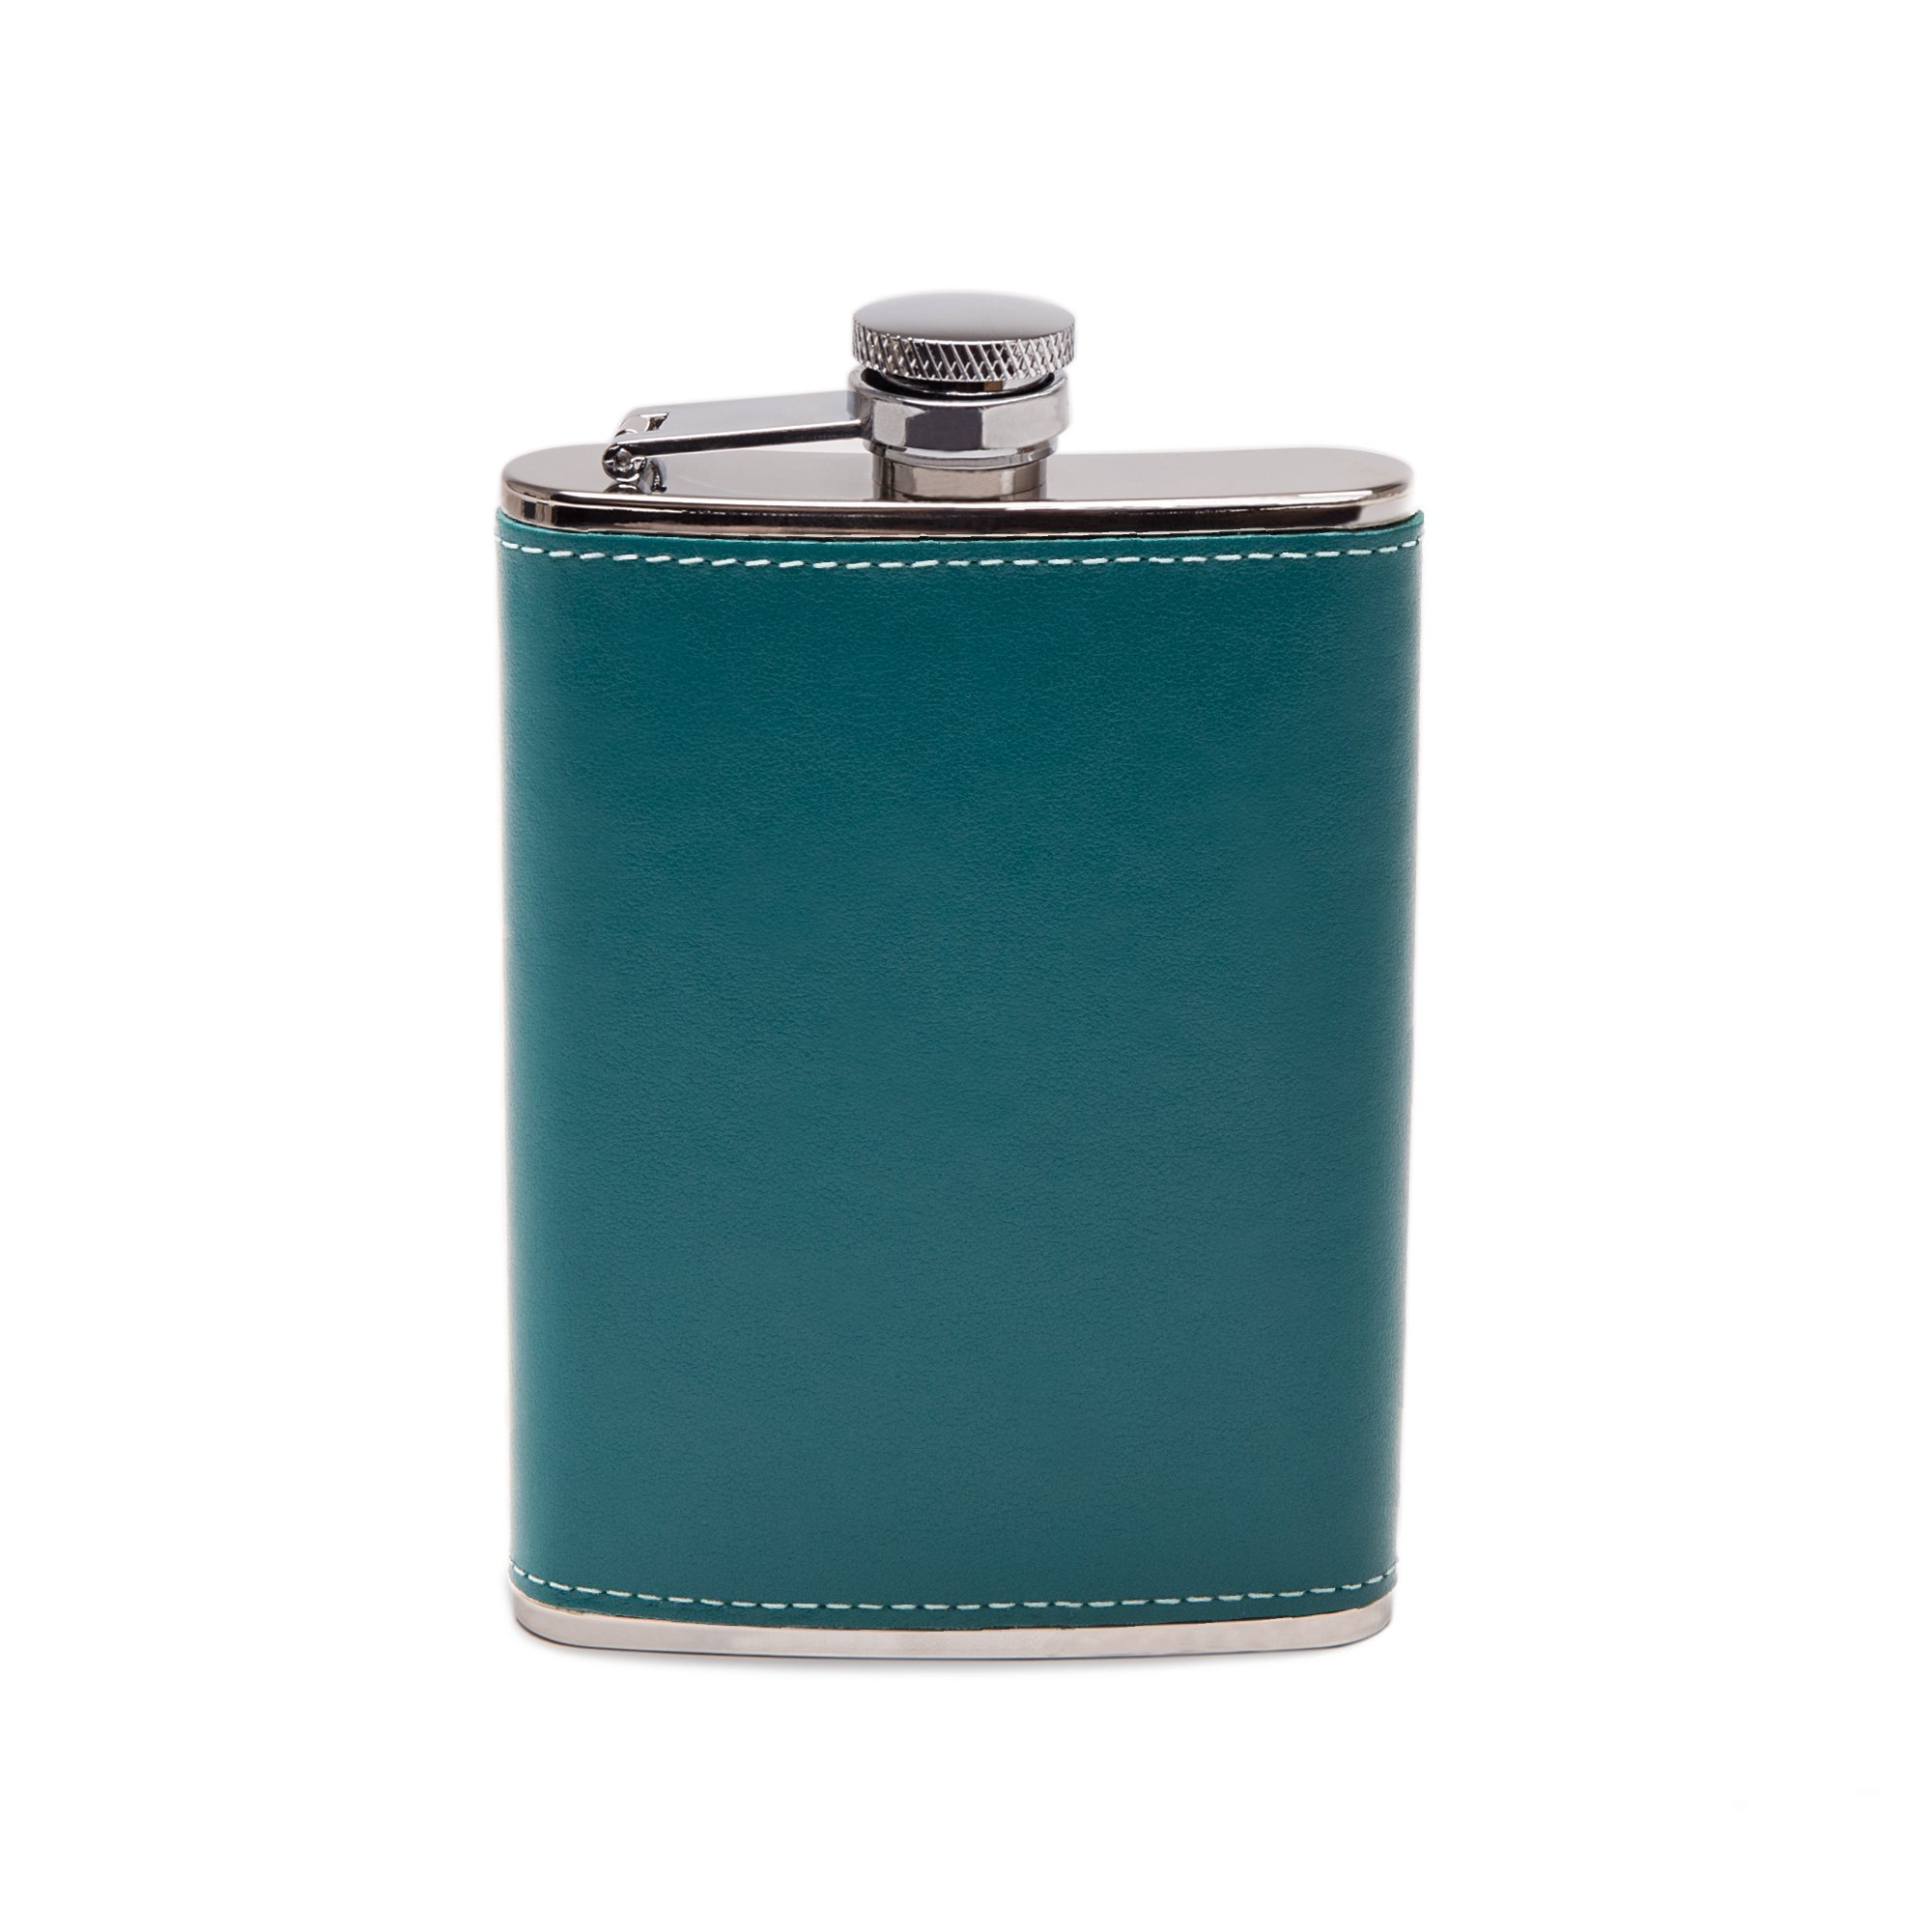 Ettinger Sterling Collection Captive Top Leather Bound Hip Flask, 6 Ounces - Turquoise/Silver